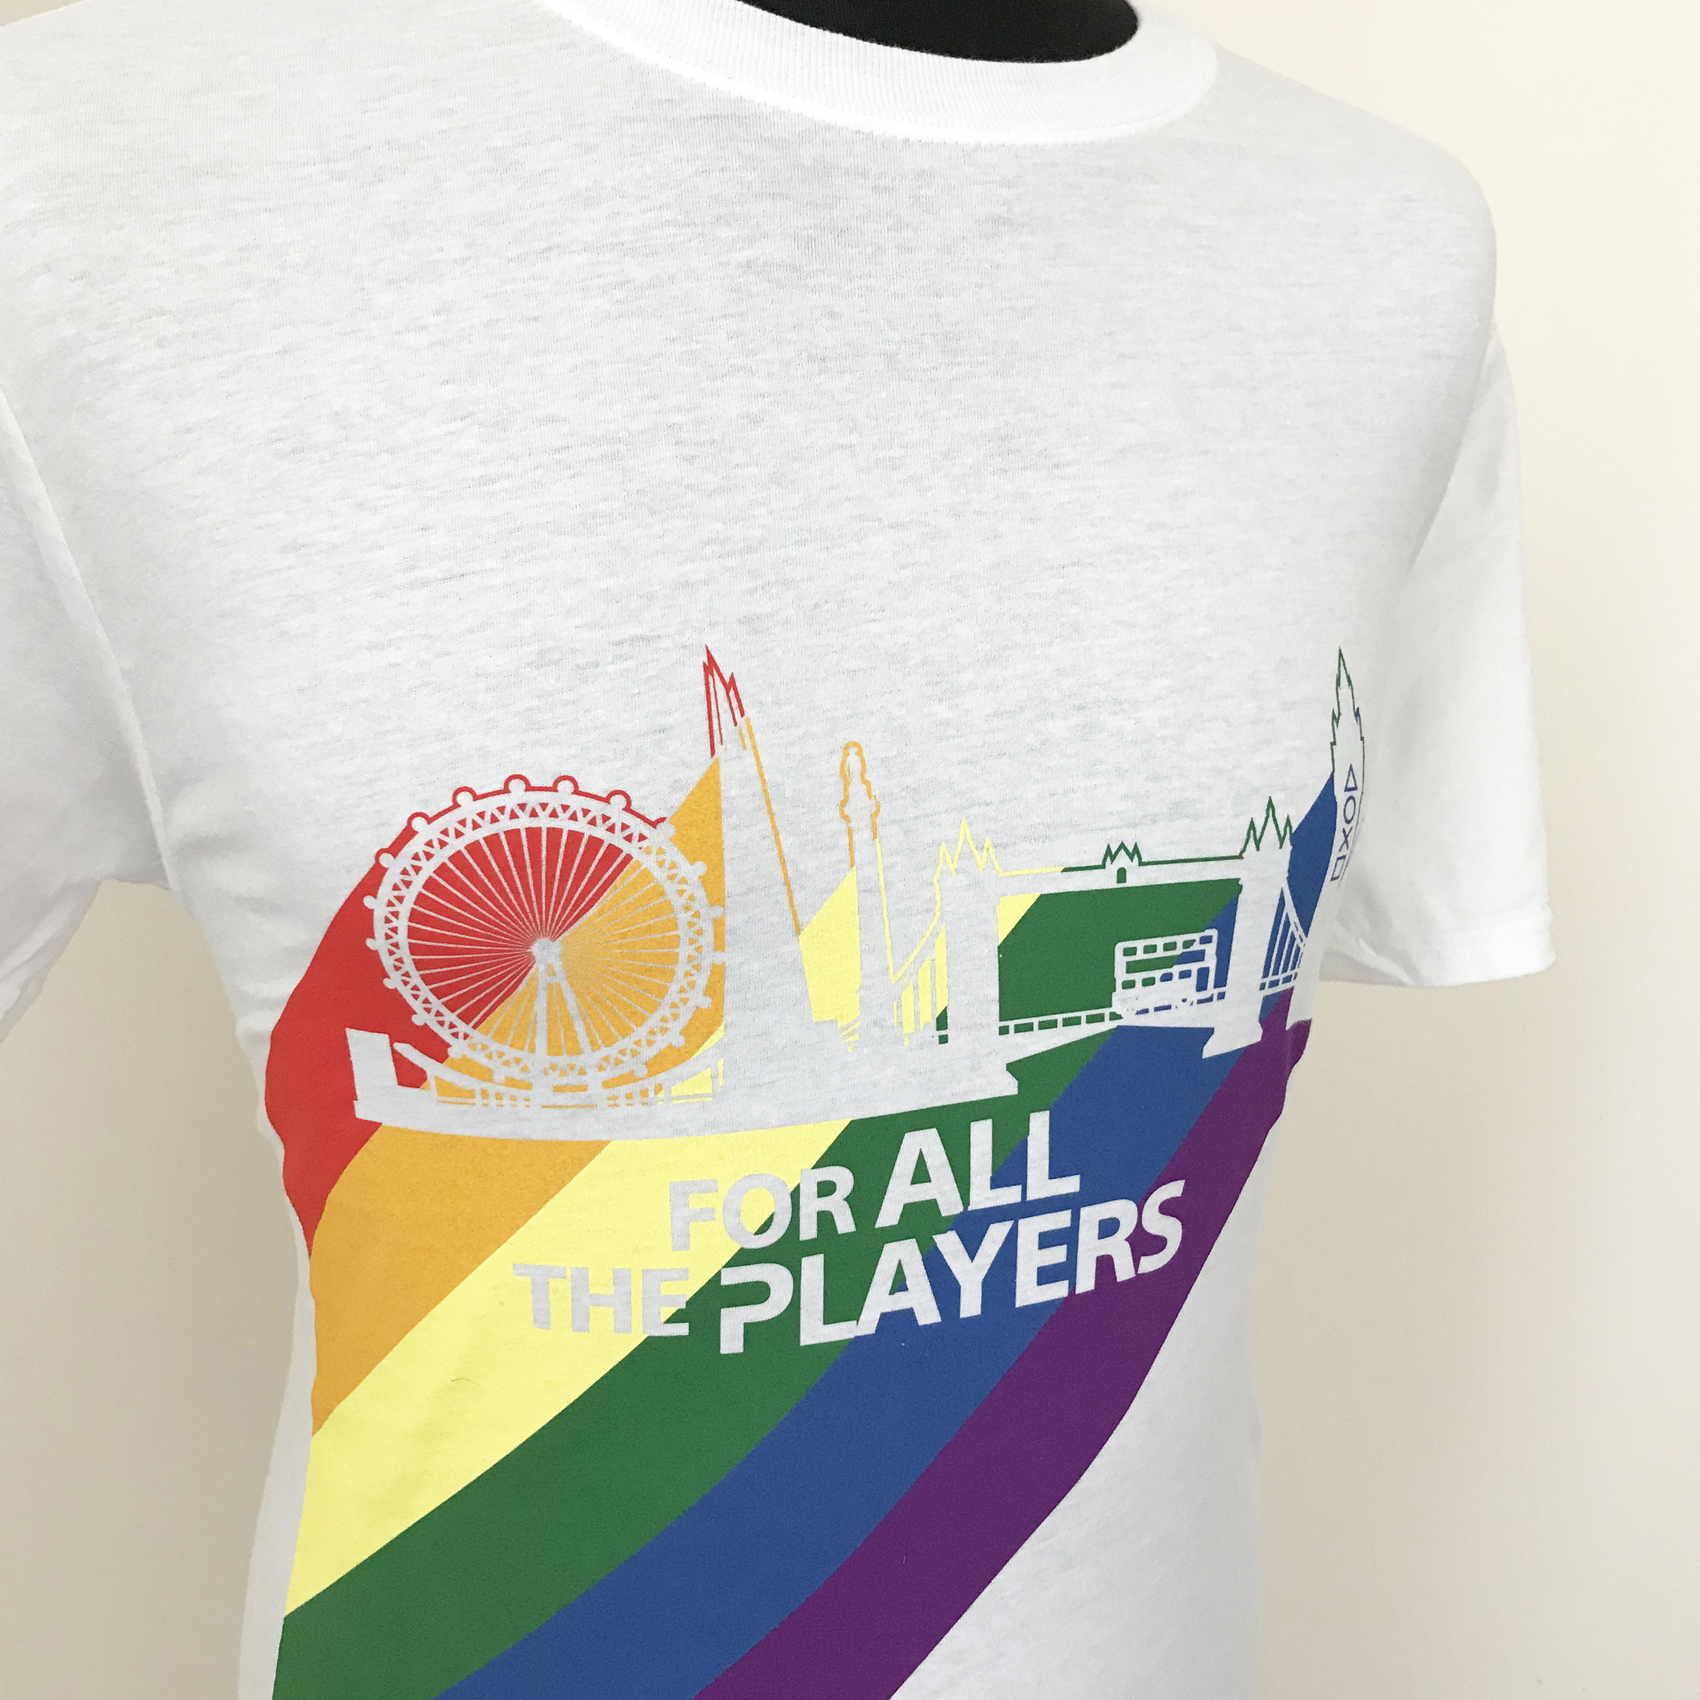 Playstation Event Clothing